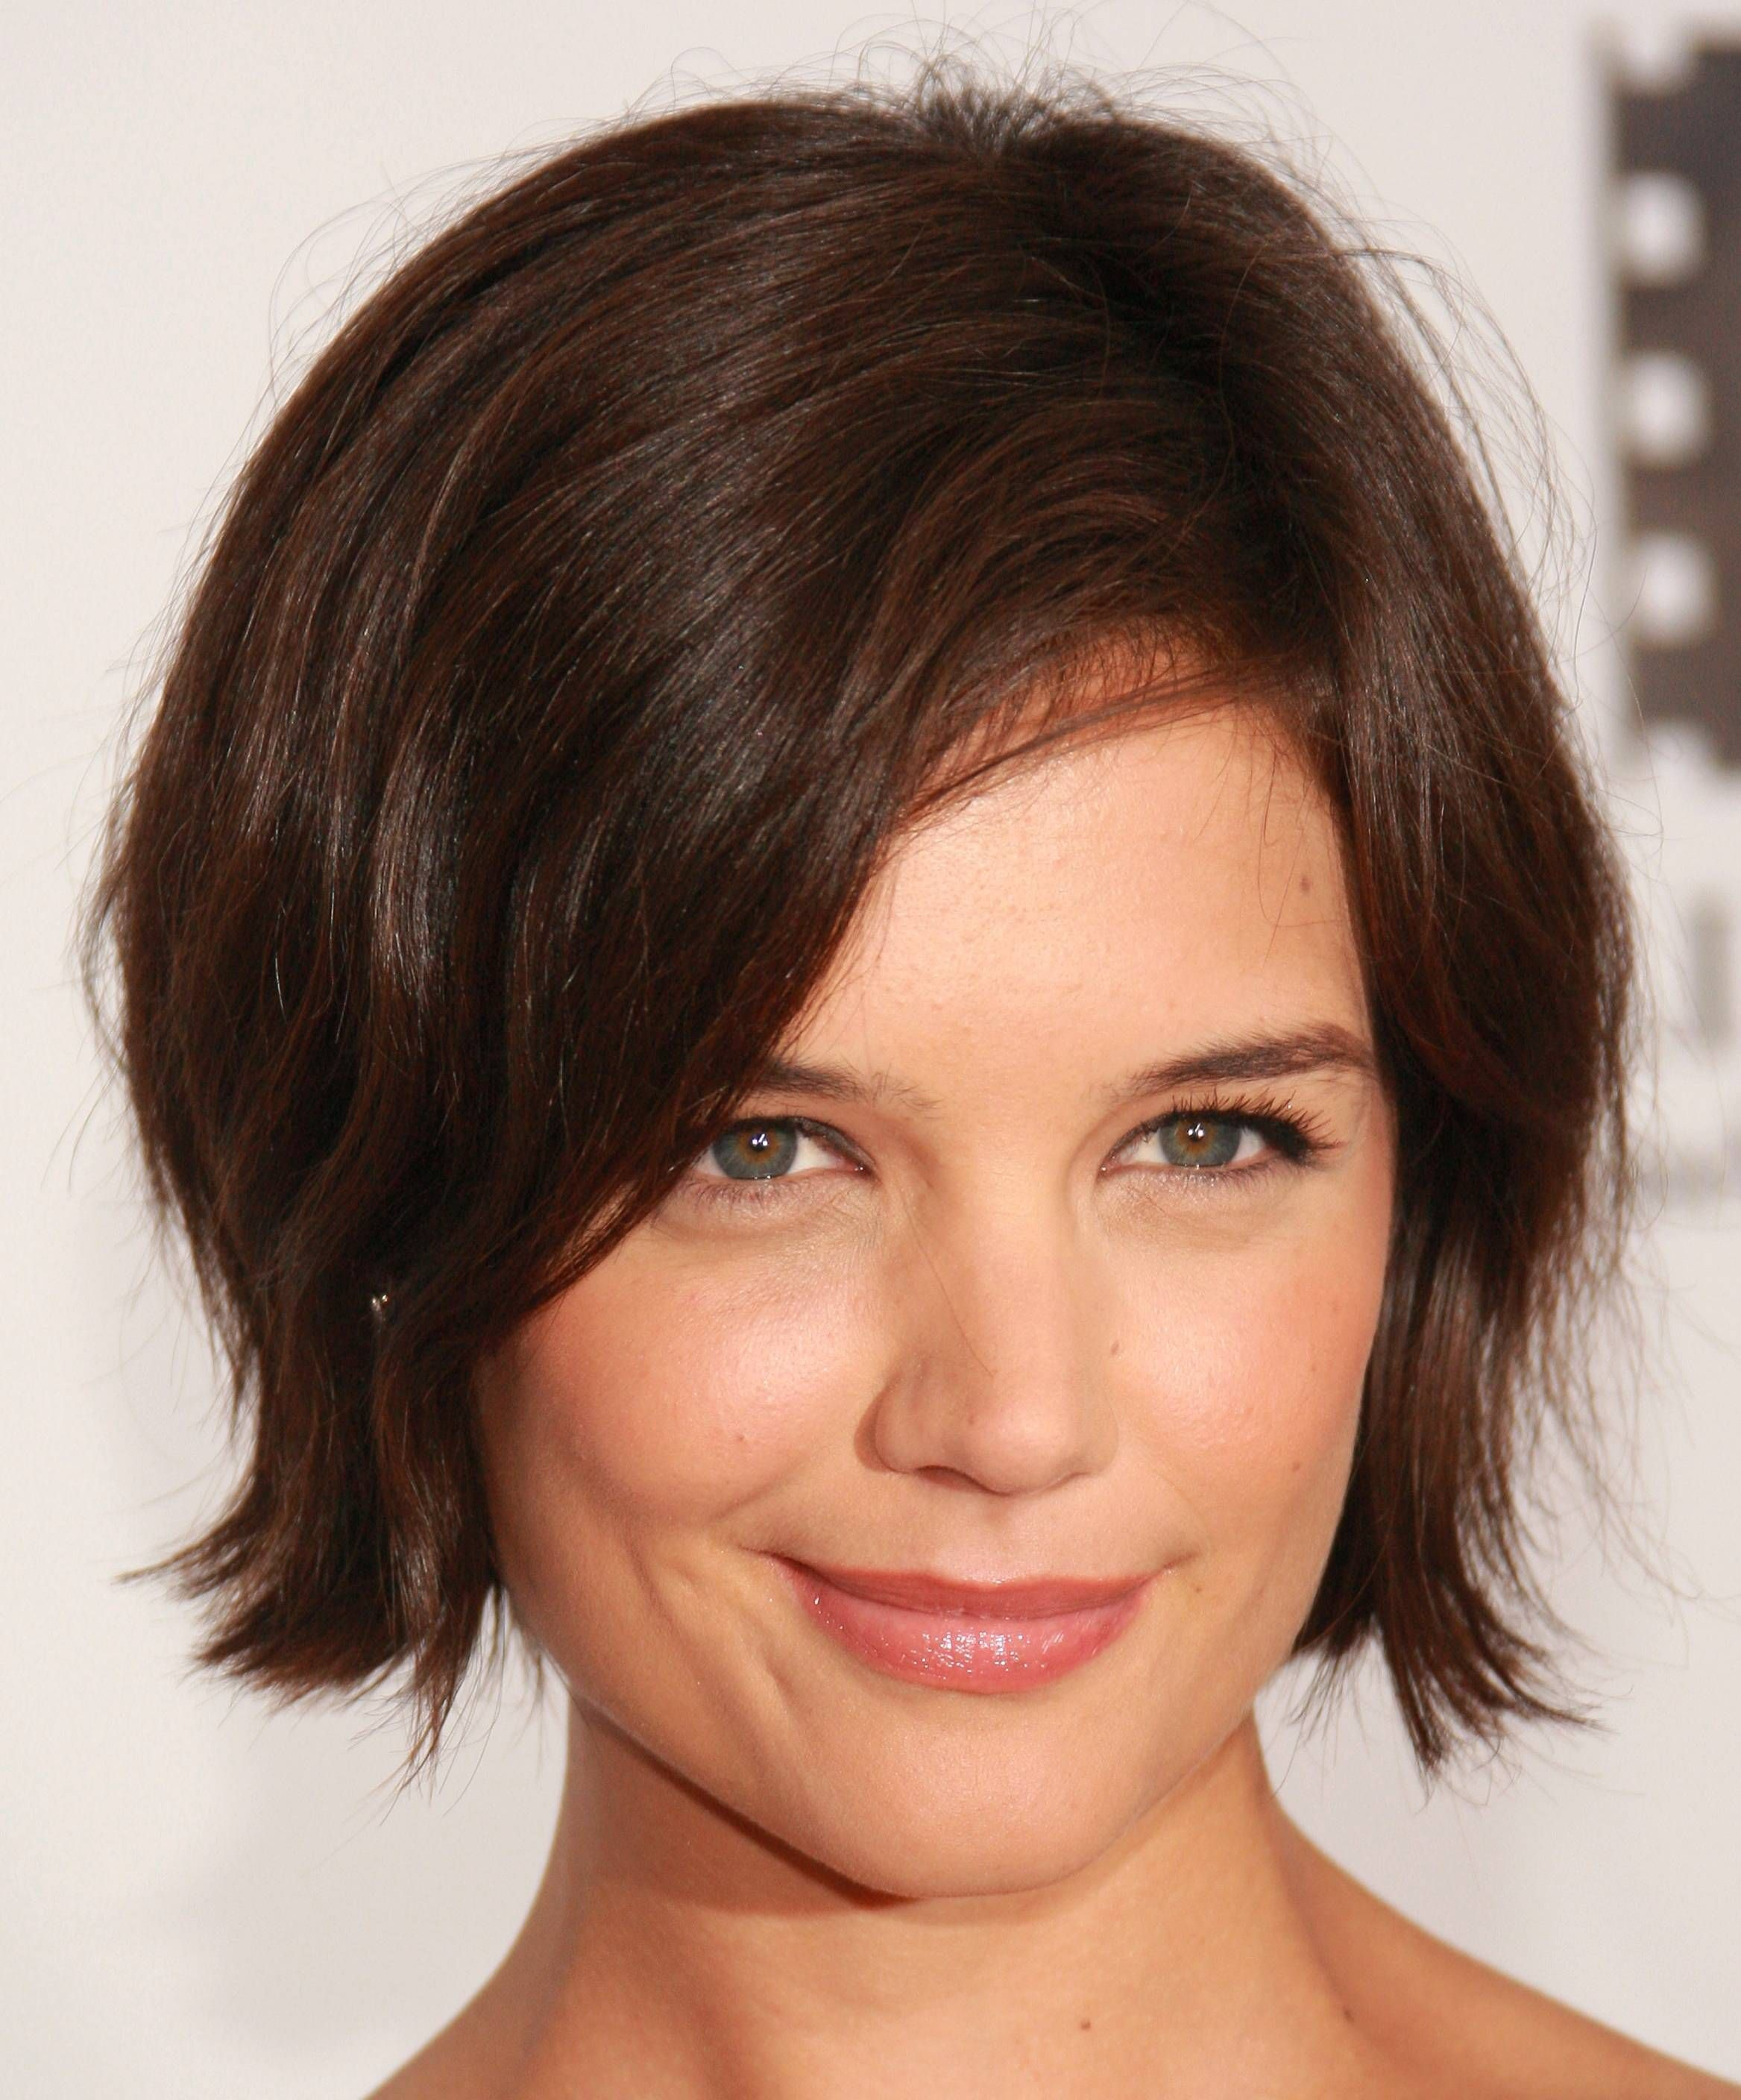 15 Katie Holmes Hairstyles From Long To Short And Back Again Thick Hair Styles Celebrity Short Hair Short Hair Styles For Round Faces